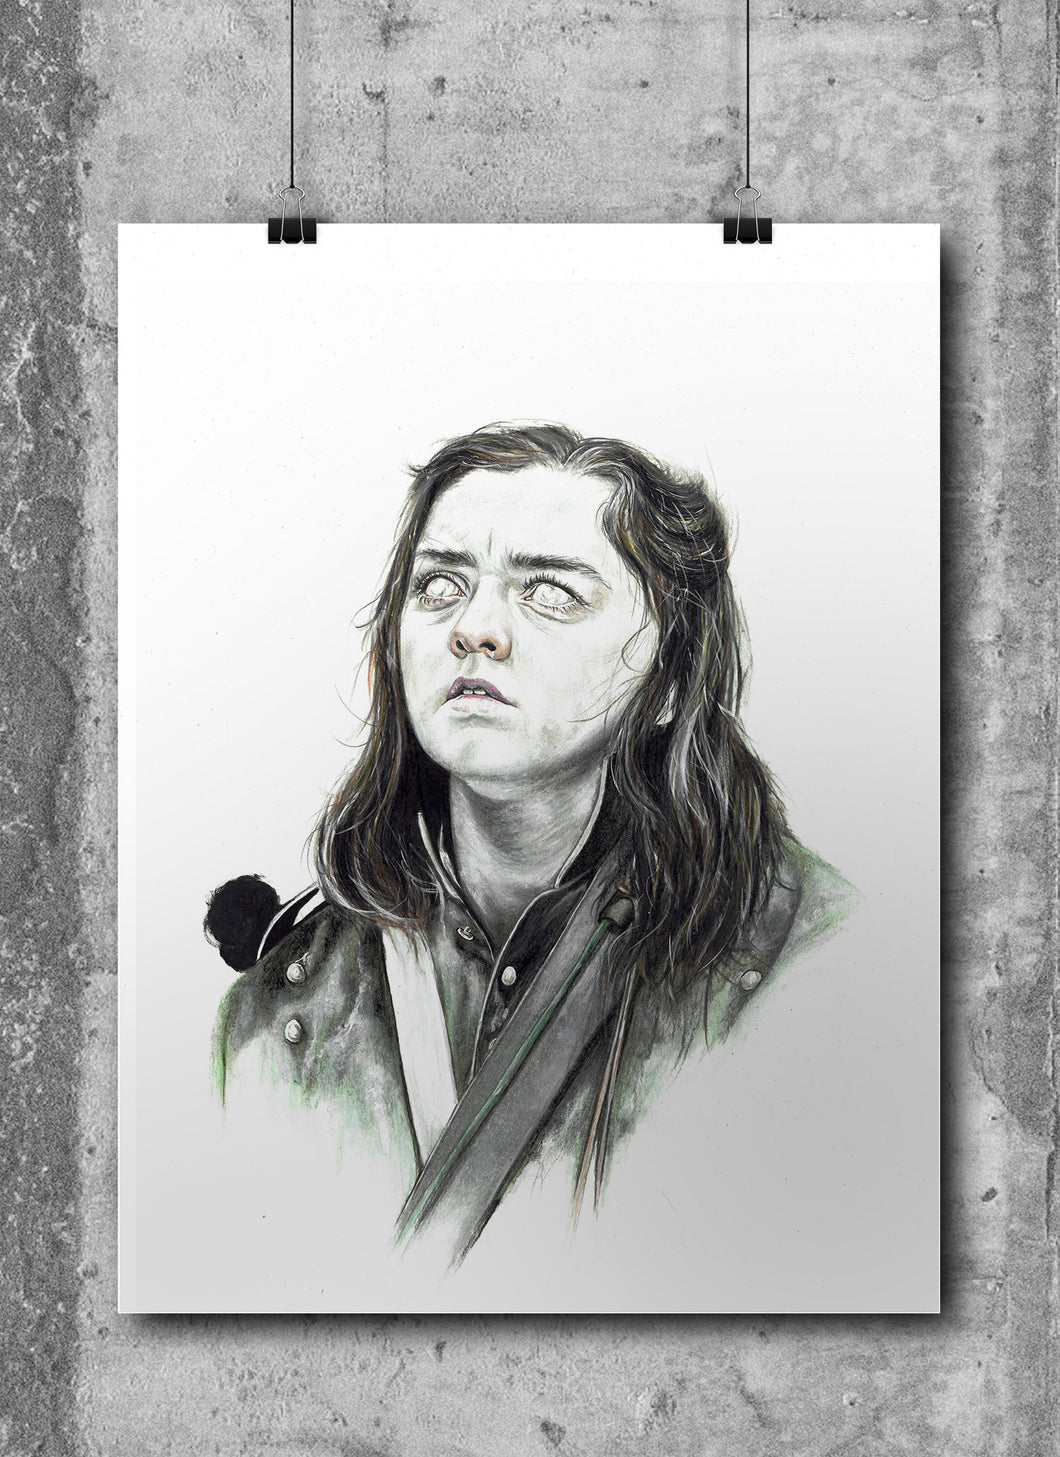 Aria Stark/Game of Thrones